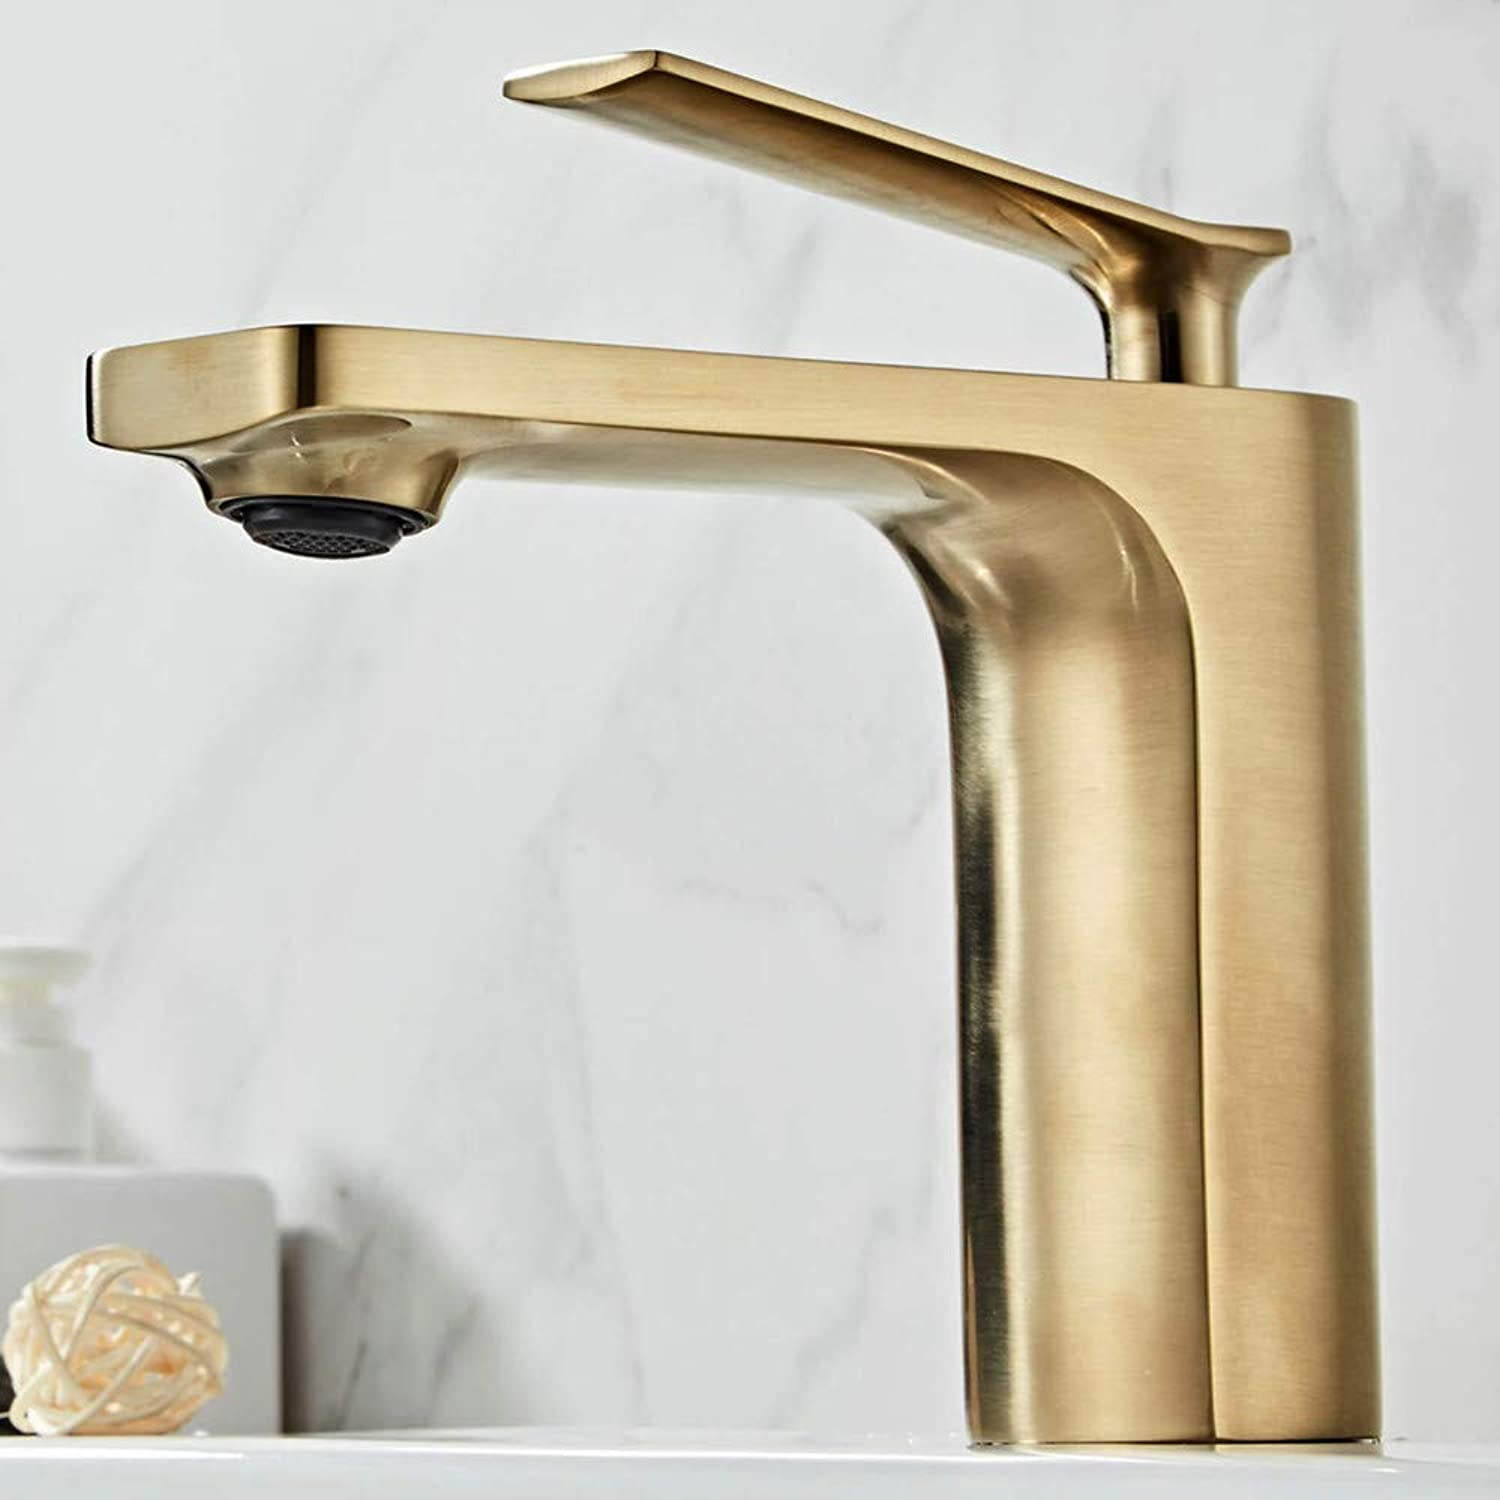 Water Tapbathroom Basin Taps Laundry Vanity Sink Faucet Brushed gold Finish Lavatory Tap